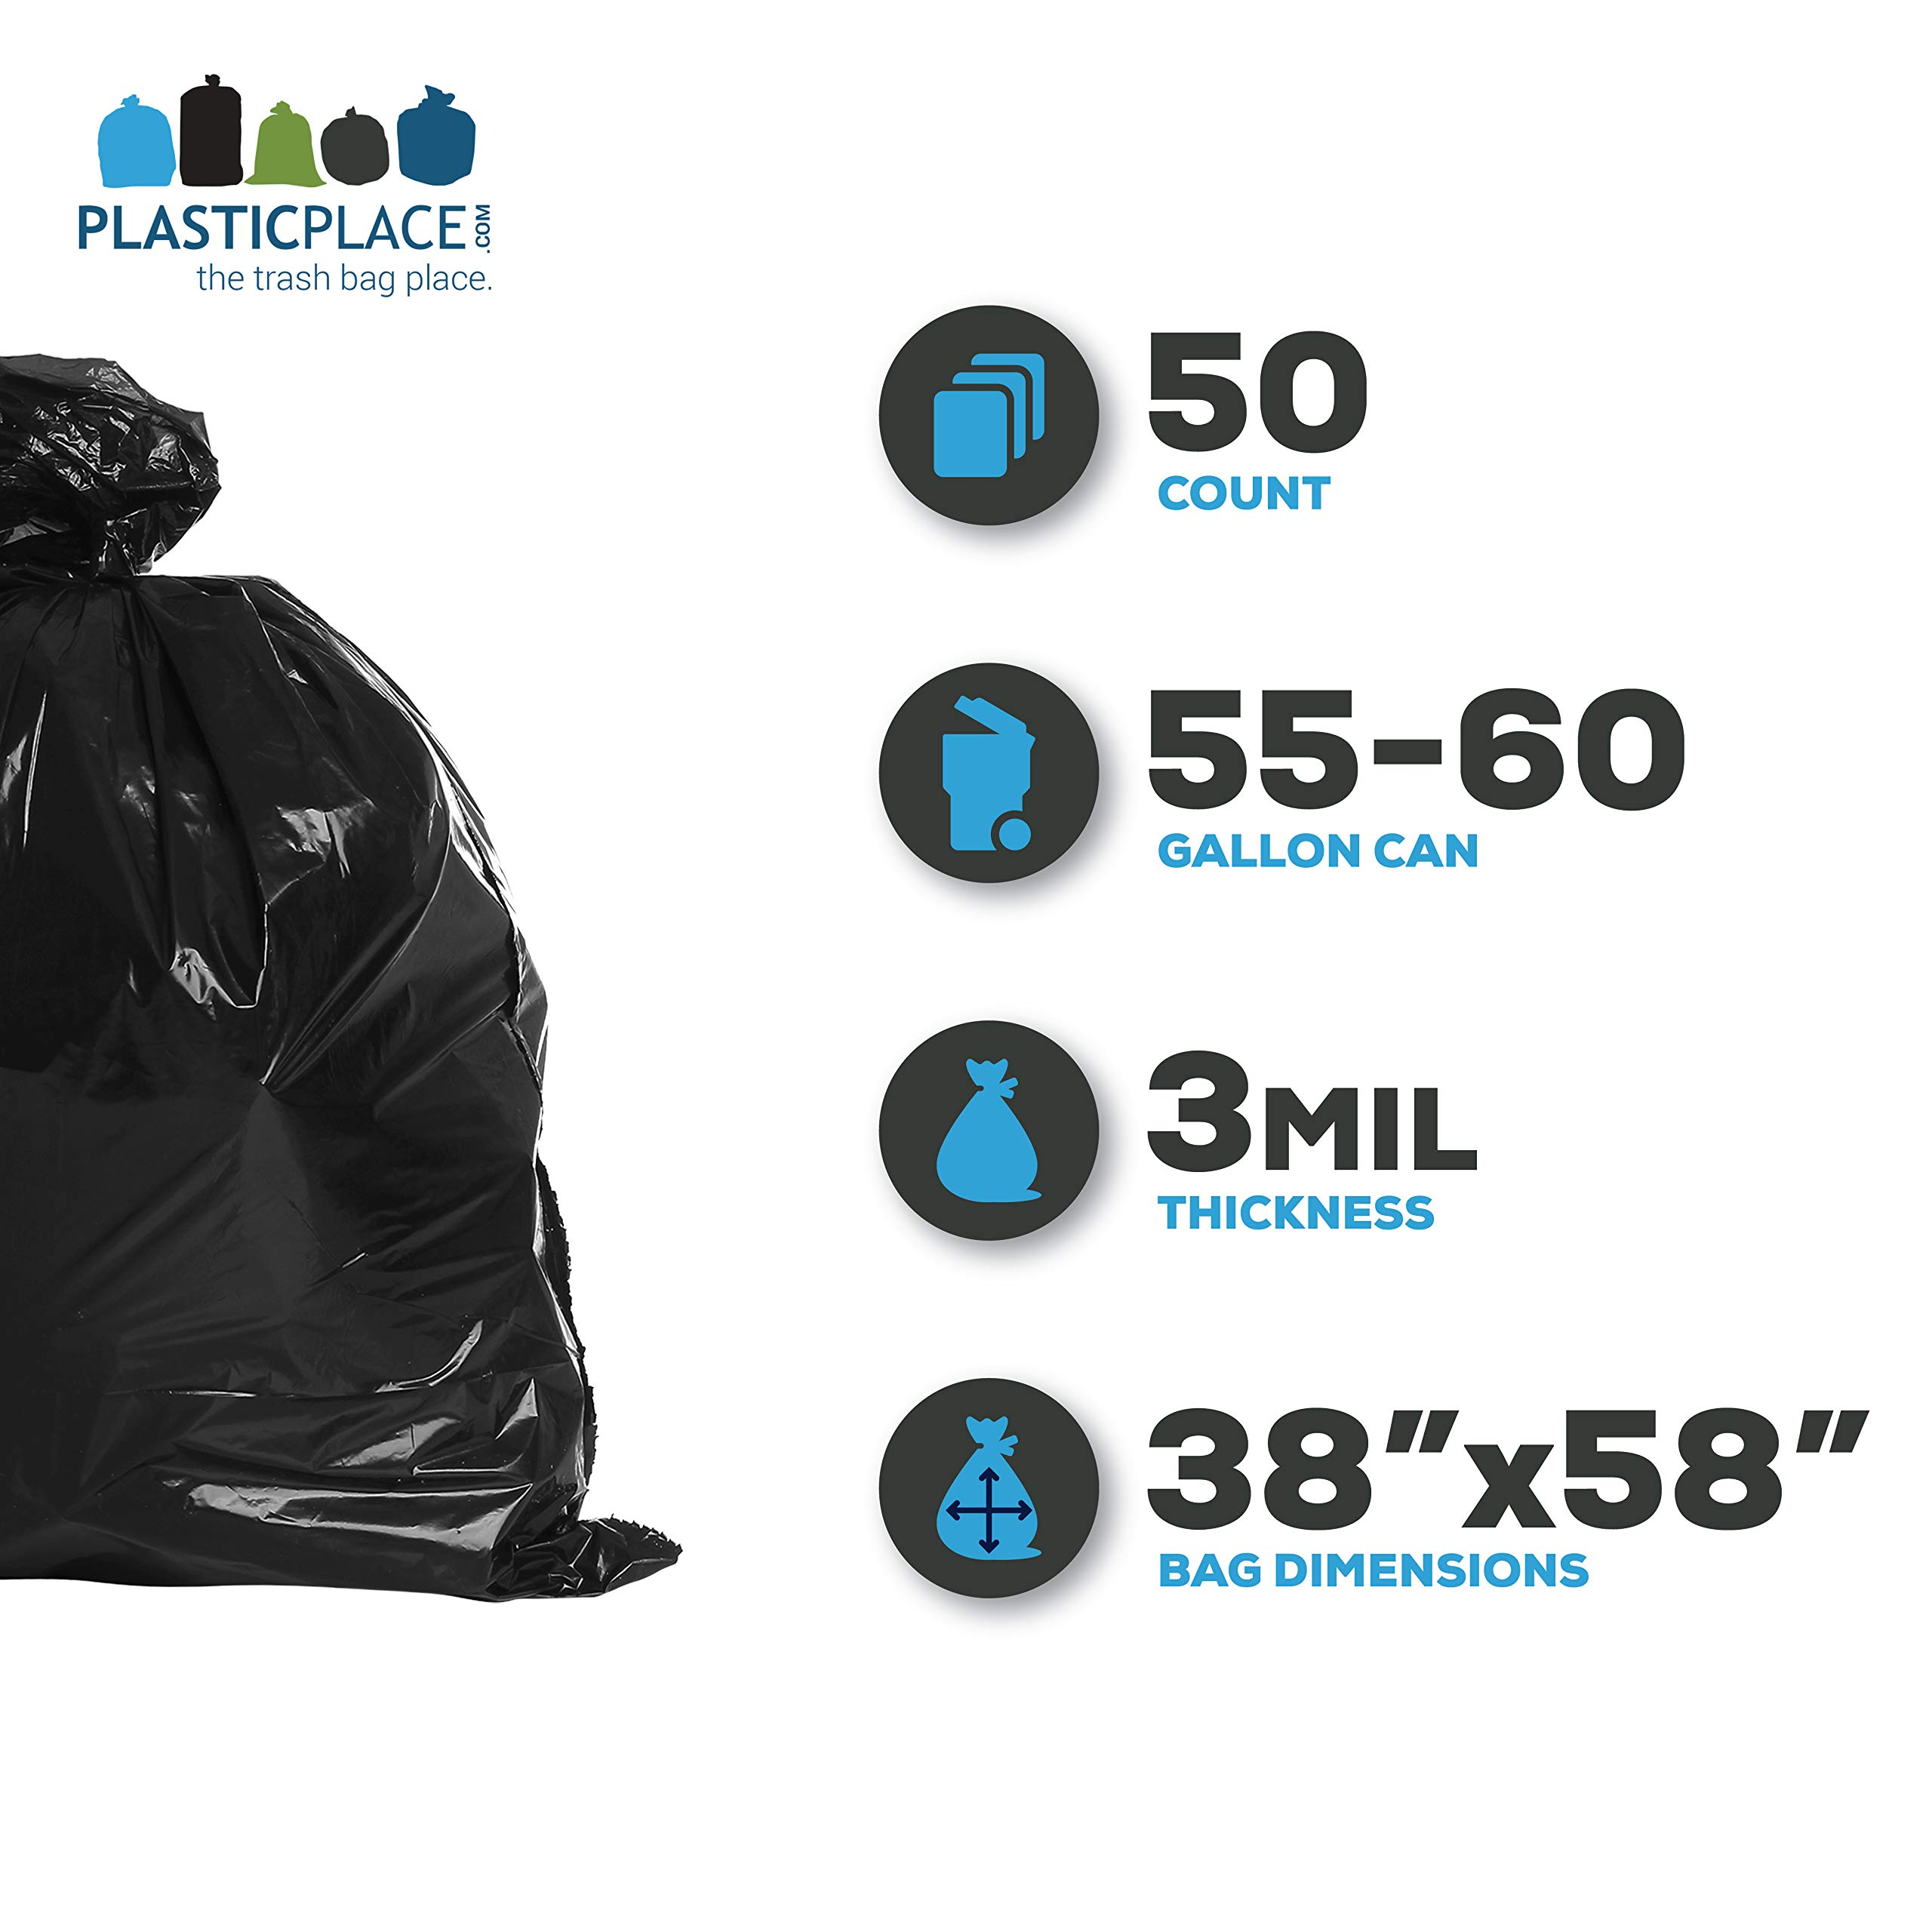 Plasticplace Contractor Trash Bags 55-60 Gallon │ 3.0 Mil │ Black Heavy Duty Garbage Bag │ 38'' x 58'' (50 Count) by Plasticplace (Image #2)